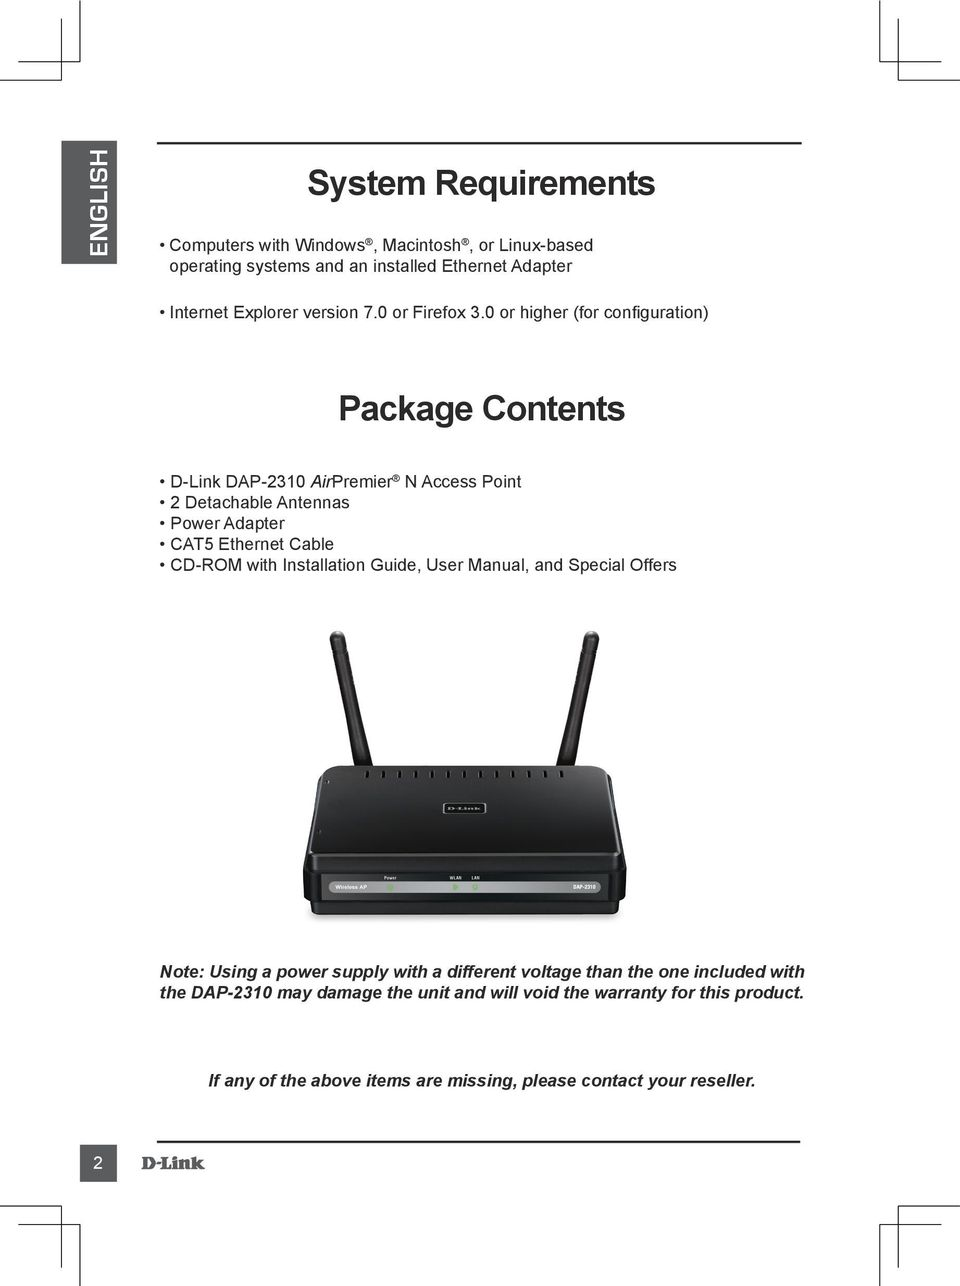 0 or higher (for configuration) Package Contents D-Link DAP-2310 AirPremier N Access Point 2 Detachable Antennas Power Adapter CAT5 Ethernet Cable